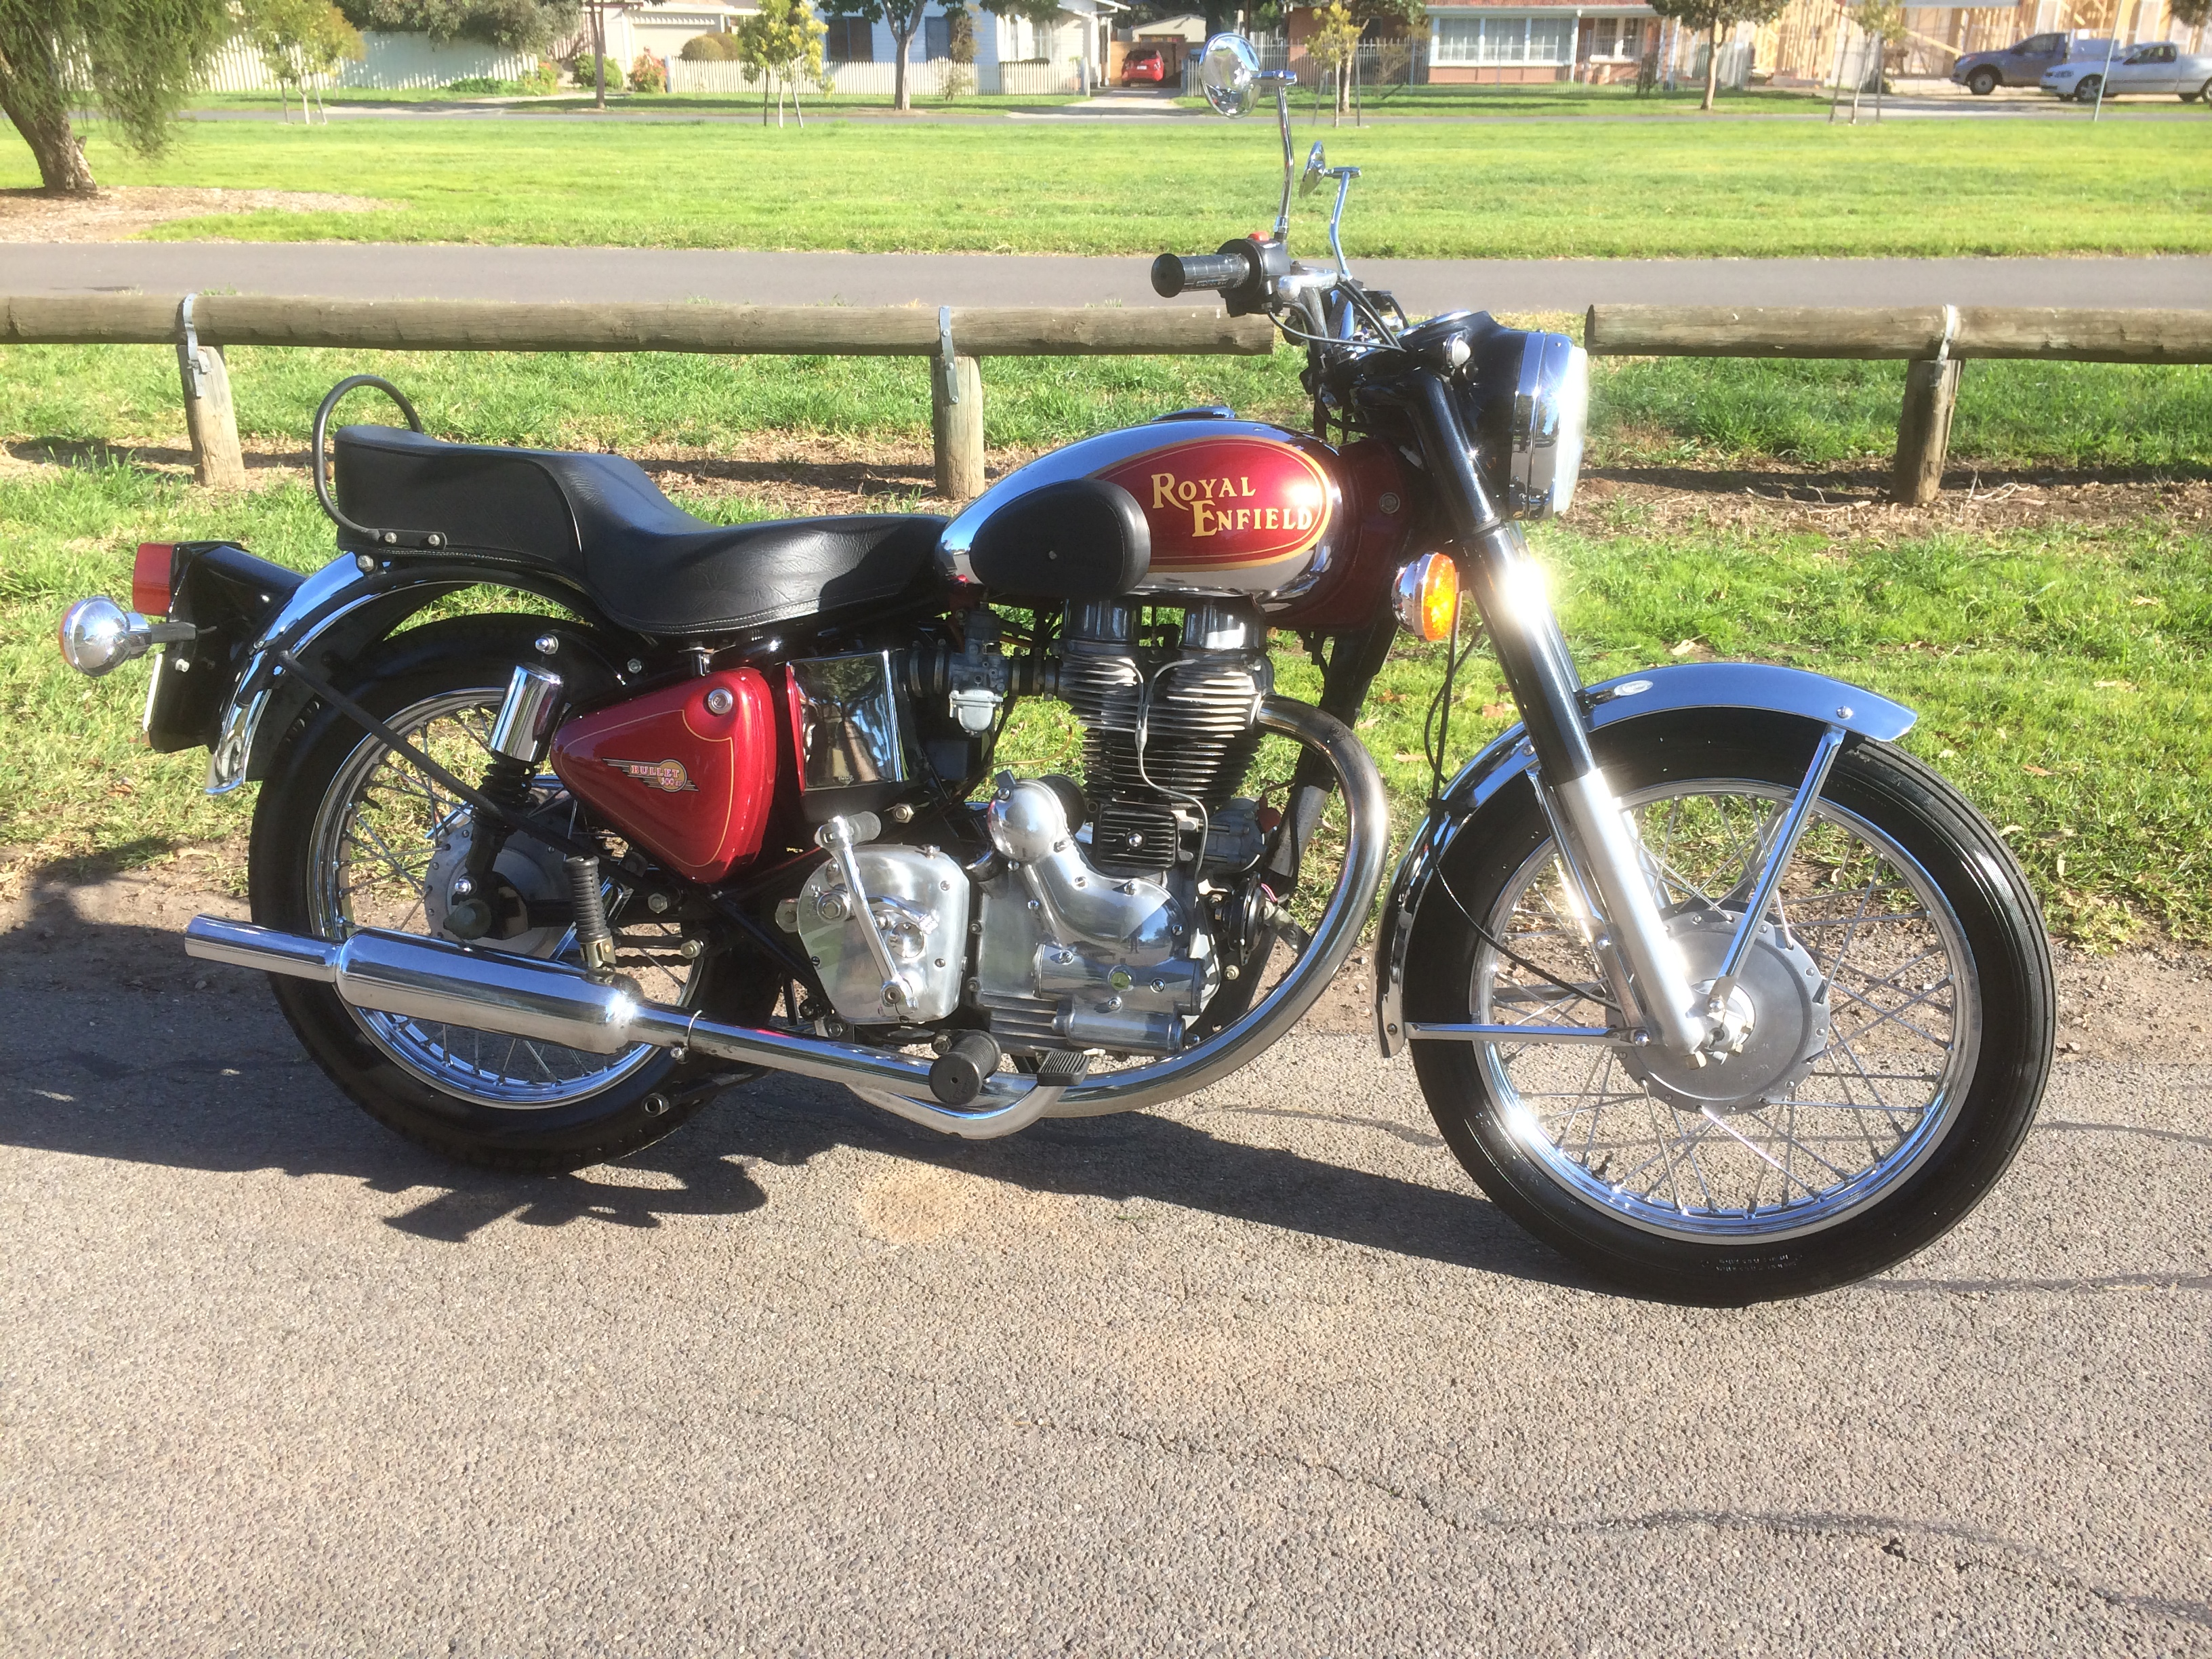 Royal Enfield Bullet 500 Classic 2011 images #123995